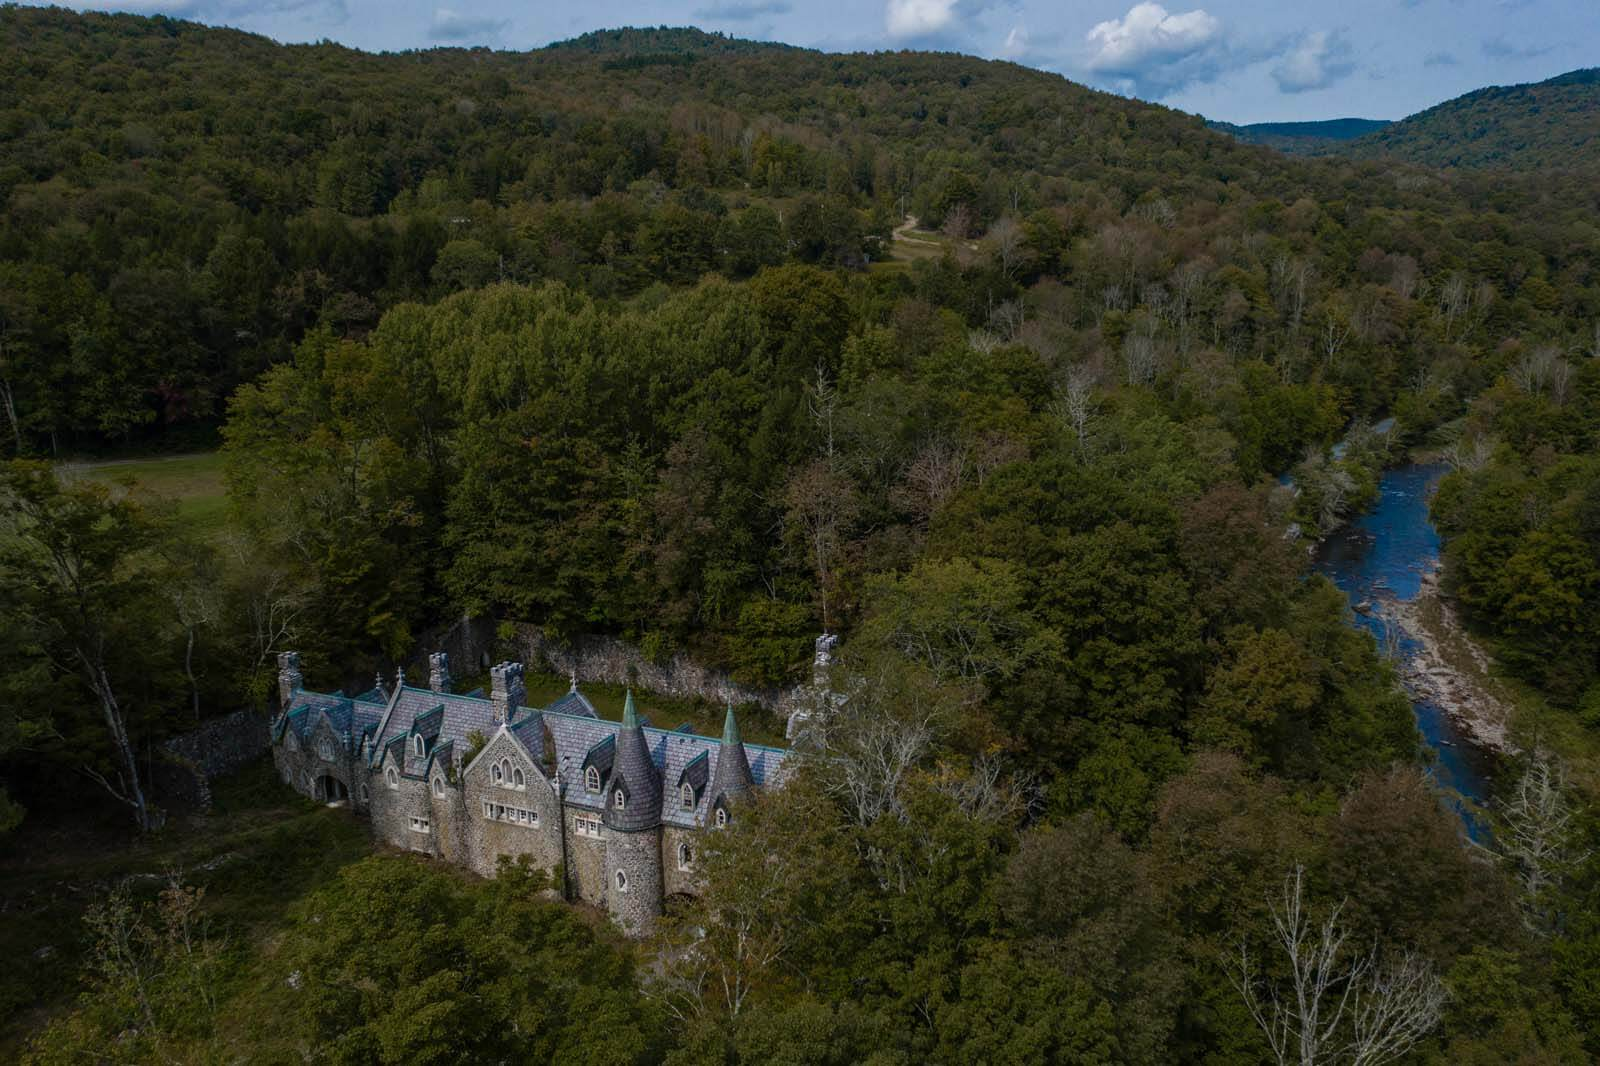 Dundas Castle aka Craig E Clair Castle in New York Roscoe Catskills